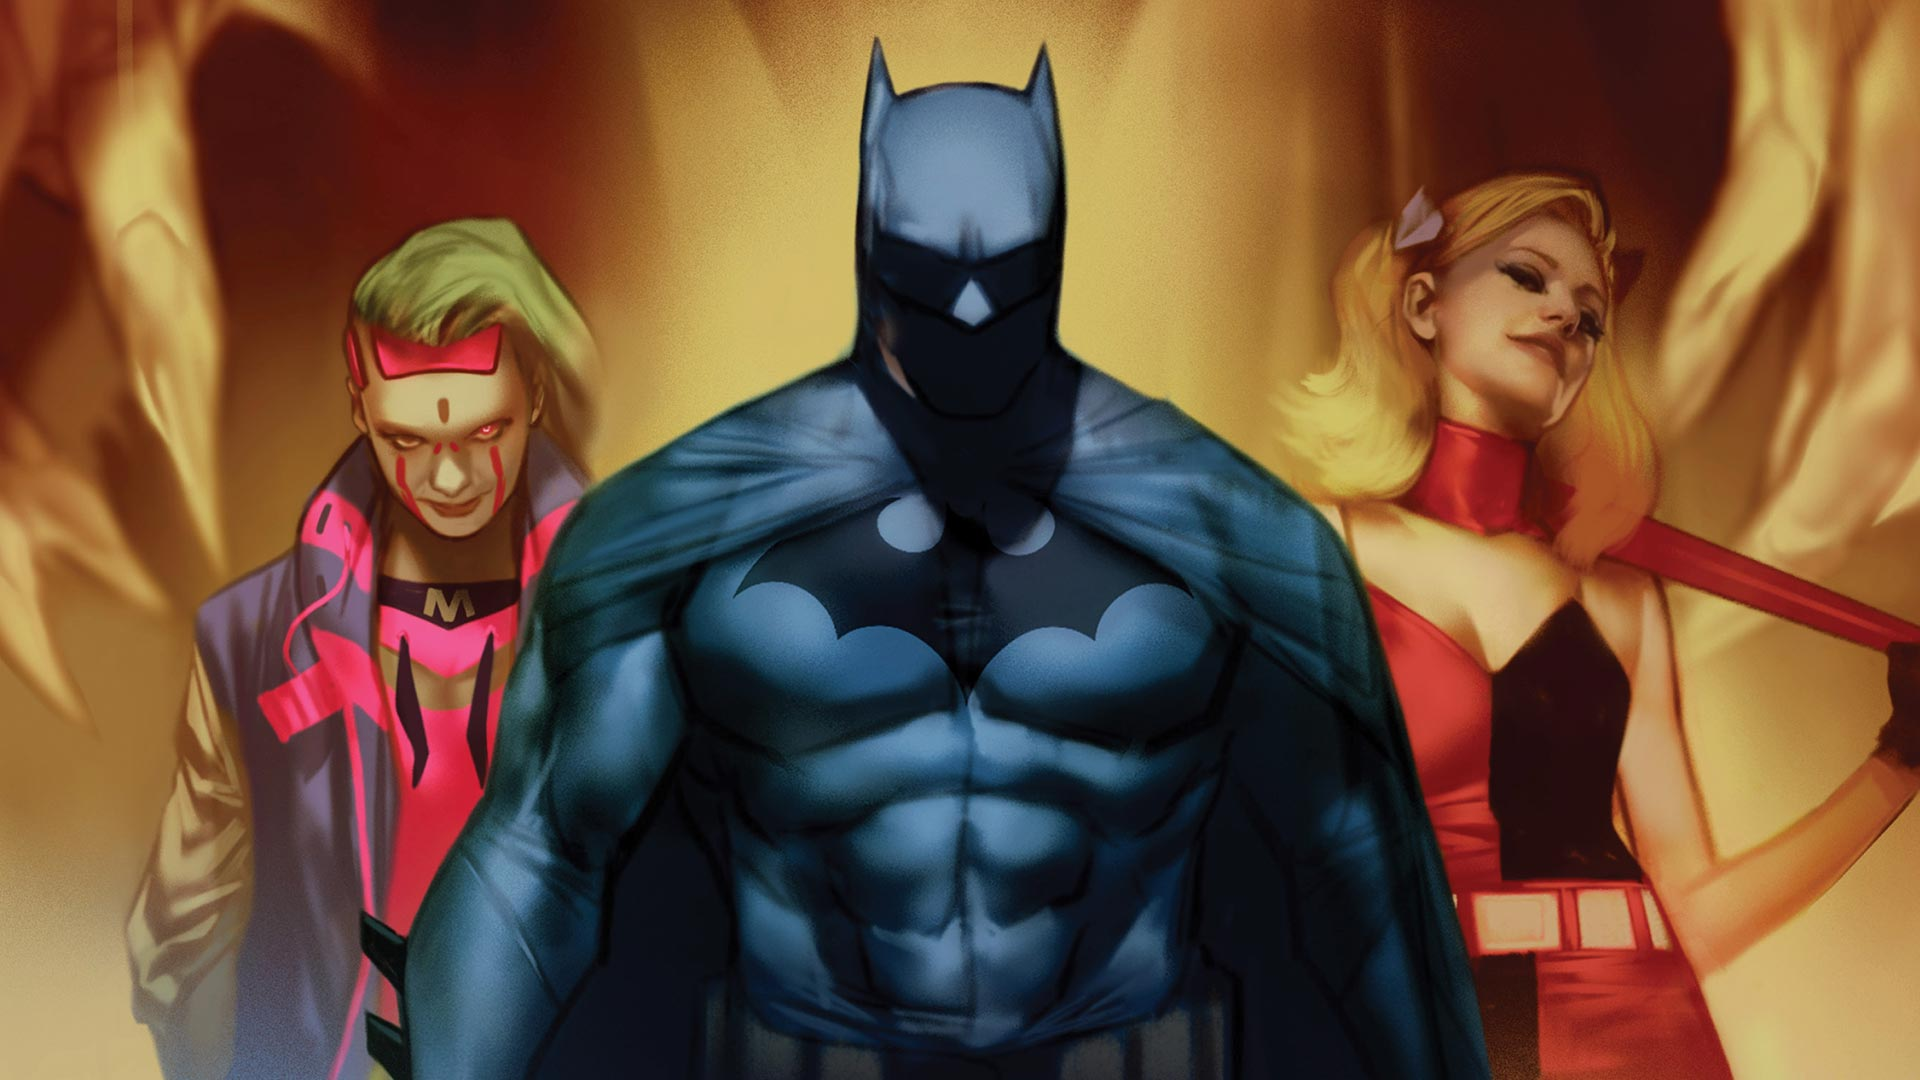 Miracle Molly, Batman, and Harley Quinn stand side by side.